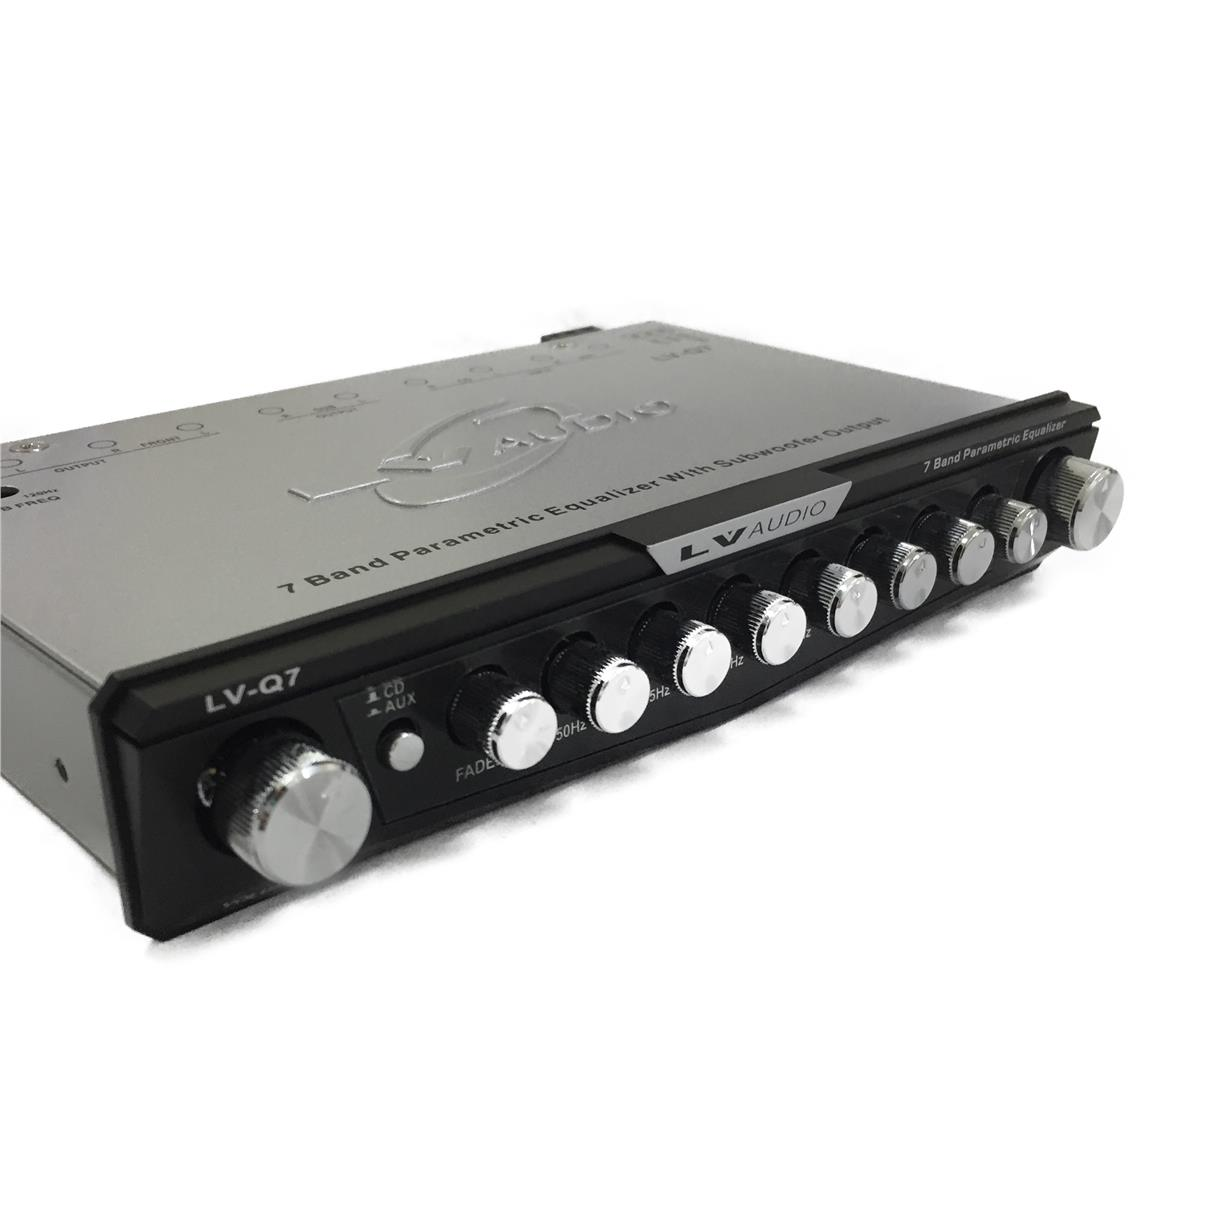 LV-Q7 7 Band Equalizer